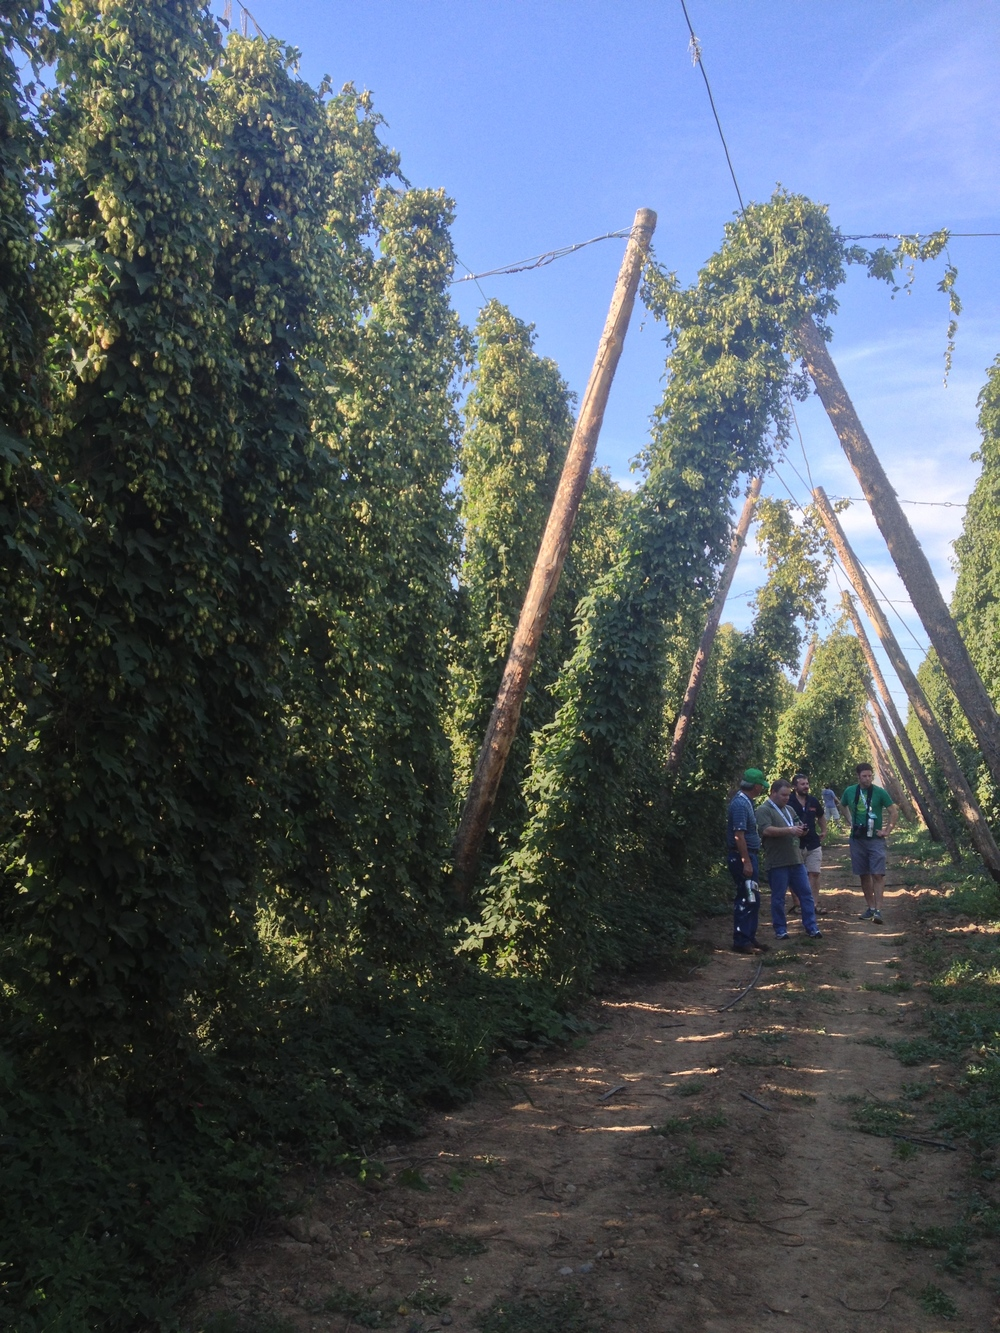 Walking through Jason Perrault's experimental hop yard. This is a section that will likely be a new commercial variety in the next 2-3 years.